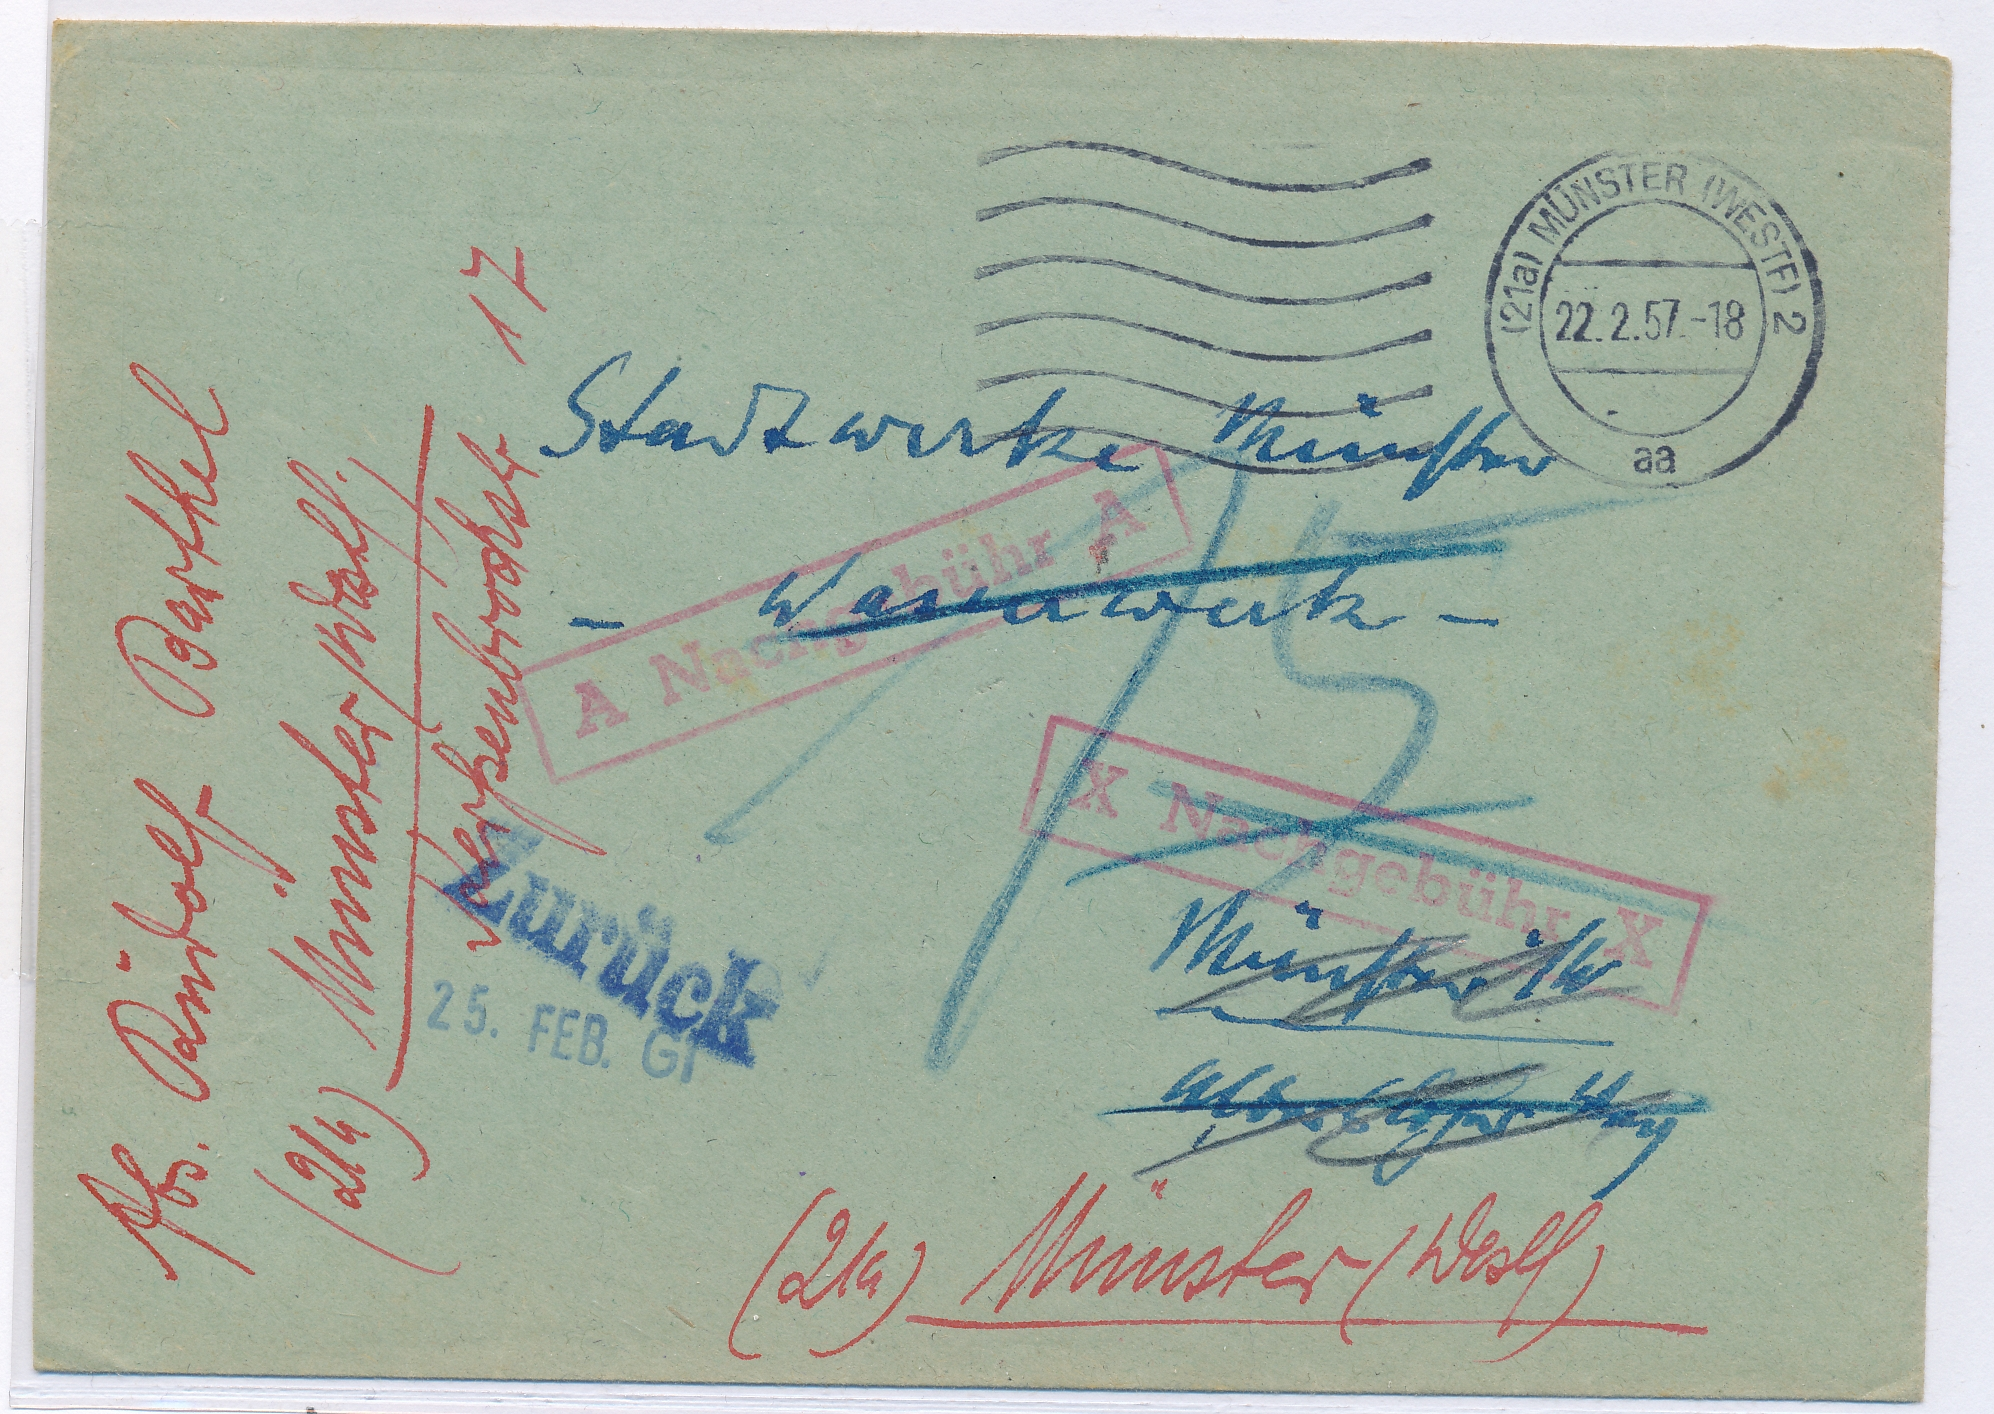 Lot 5424 - Main catalogue bundesrepublik deutschland -  Peter Harlos Auctions 41. Auktion